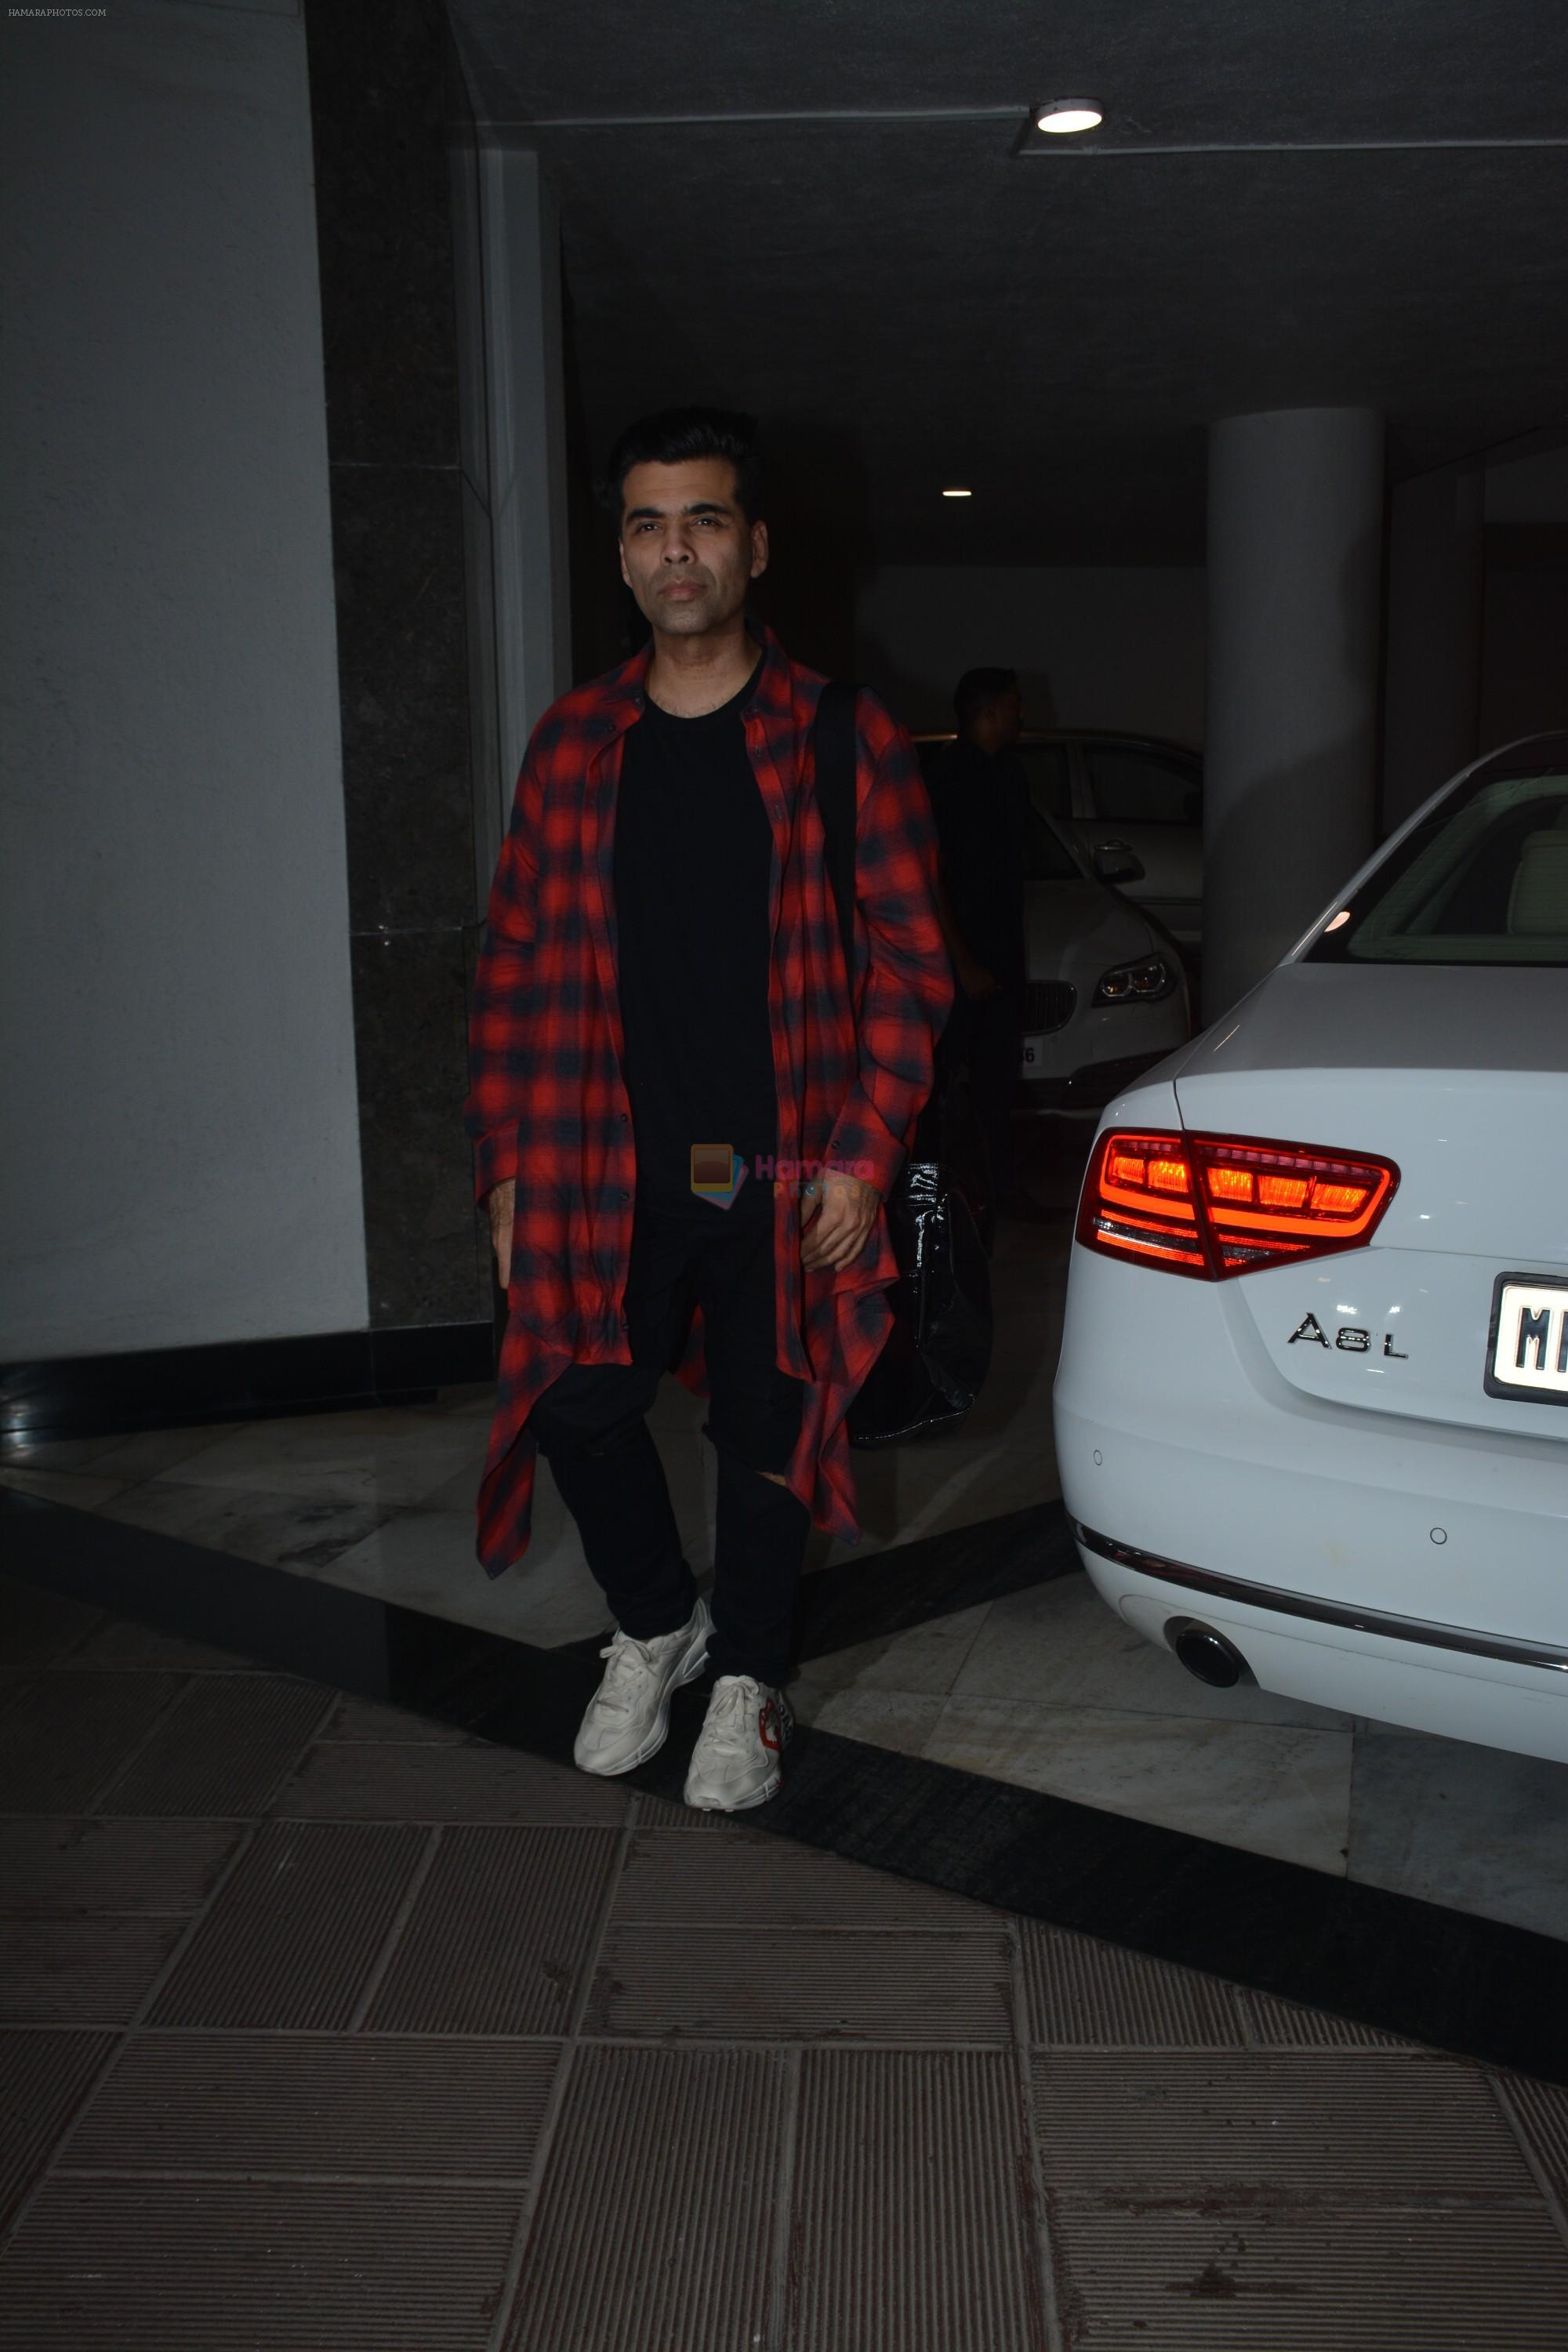 Karan Johar at Manish Malhotra's birthday party at his bandra residence on 4th Dec 2018